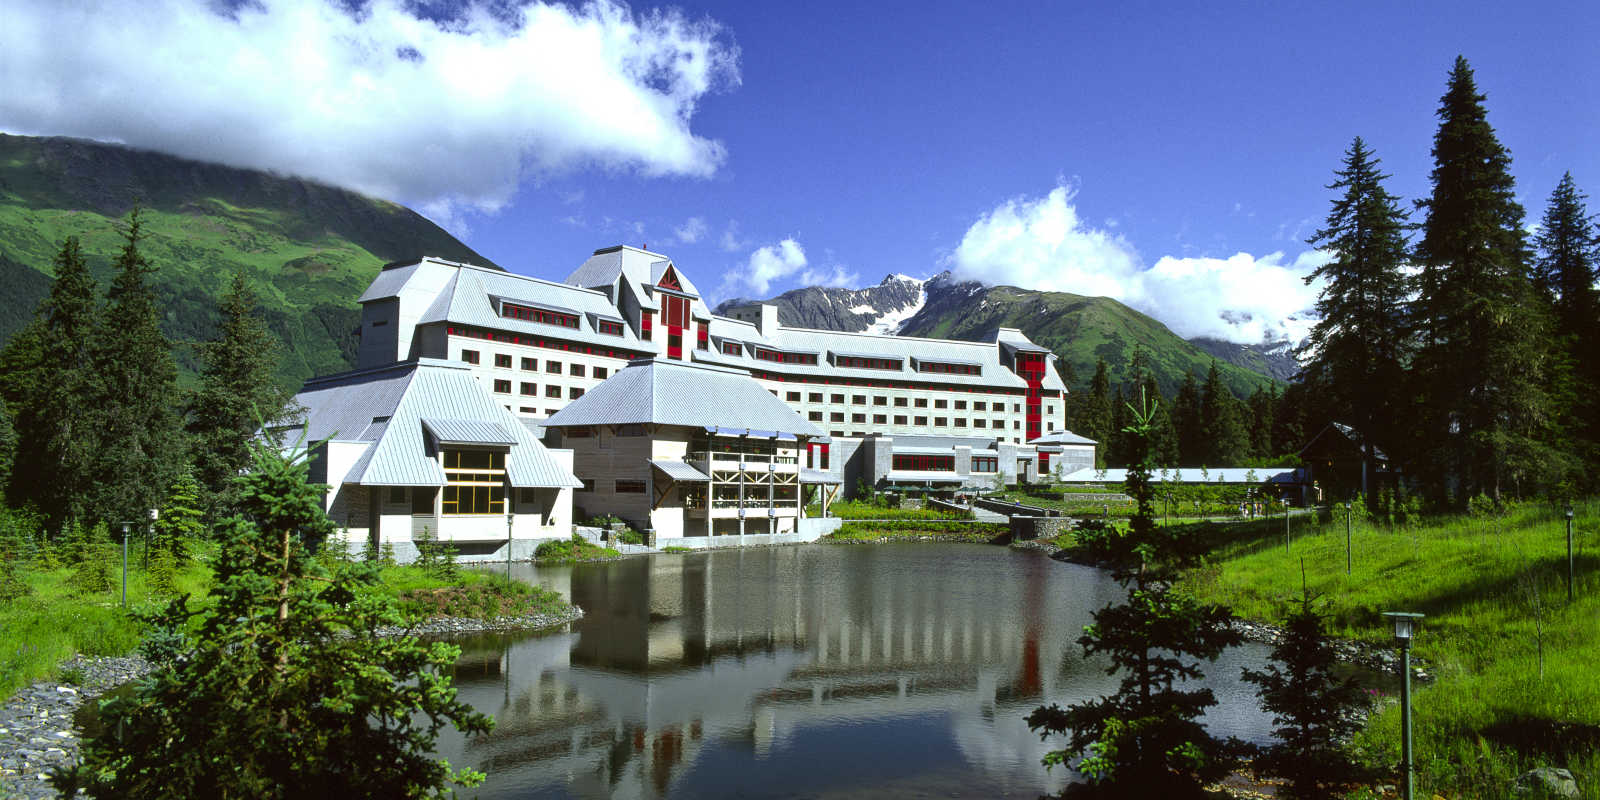 Alyeska Resort in Summer